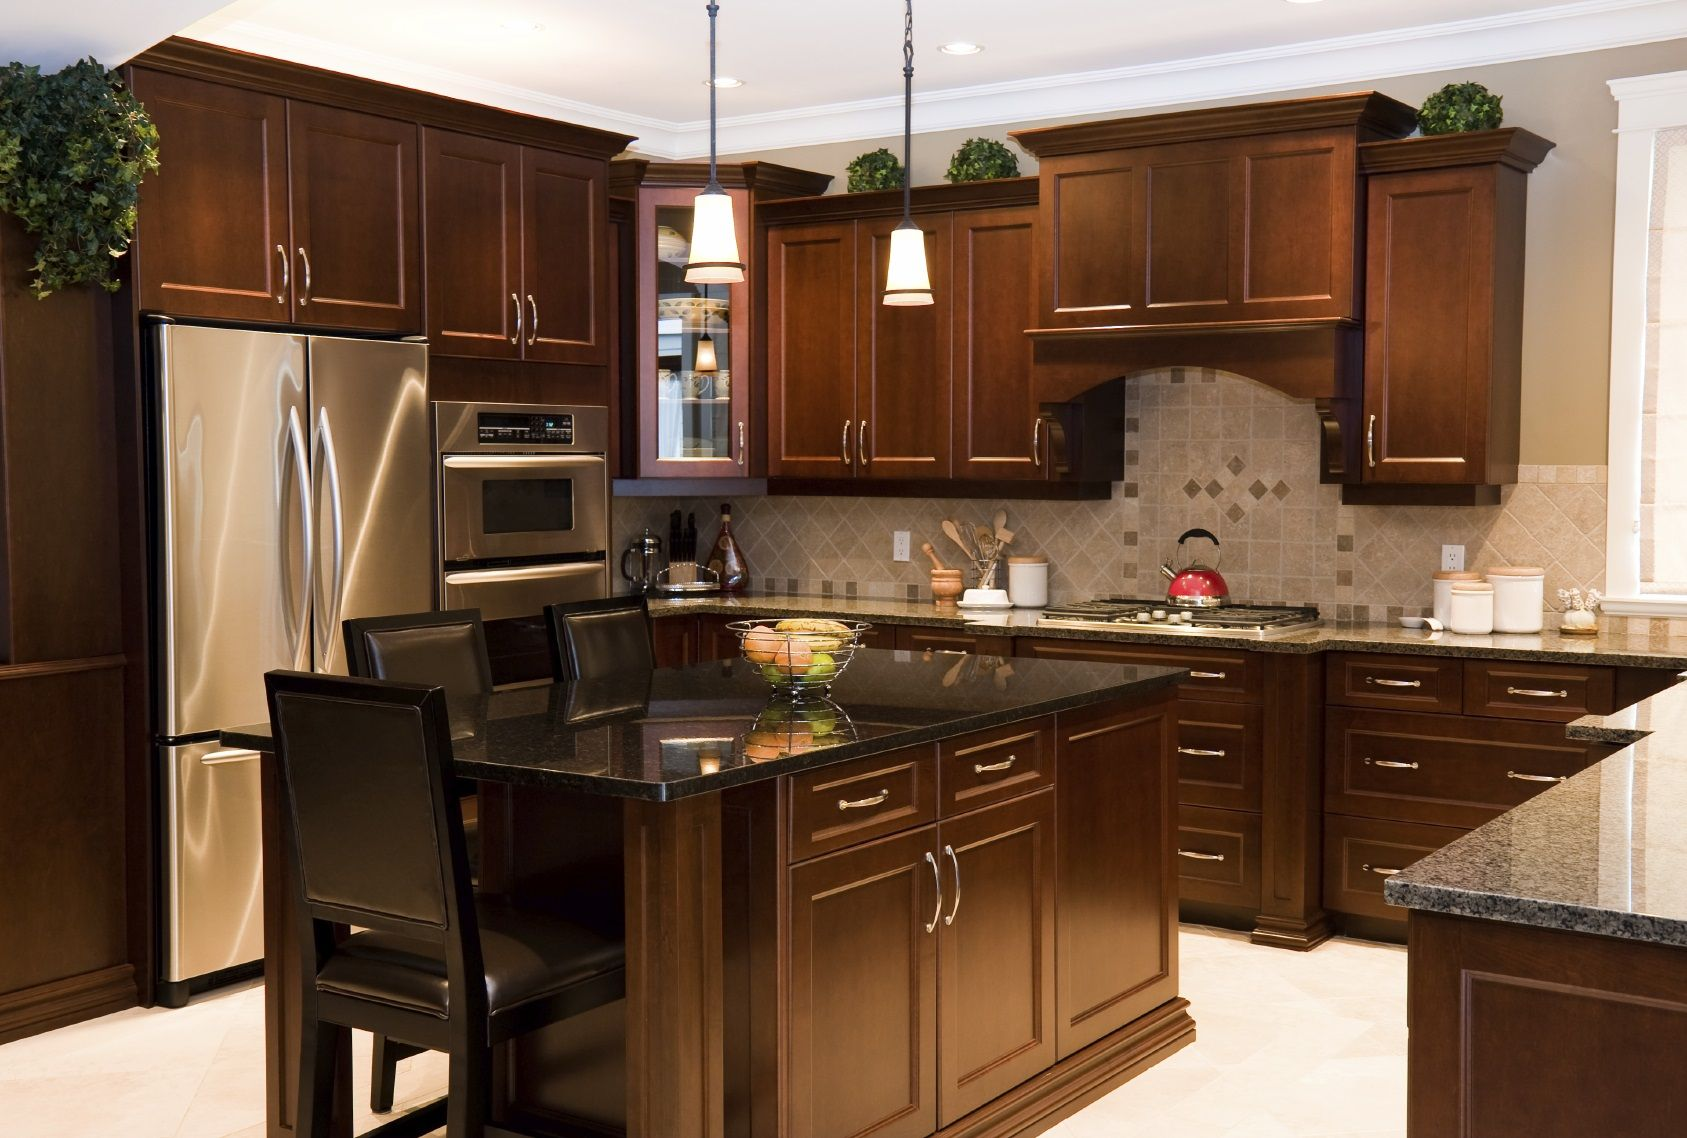 Interior Wall Cabinets Kitchen kitchen wall cabinets have to fit in properly httpohhkitchen com